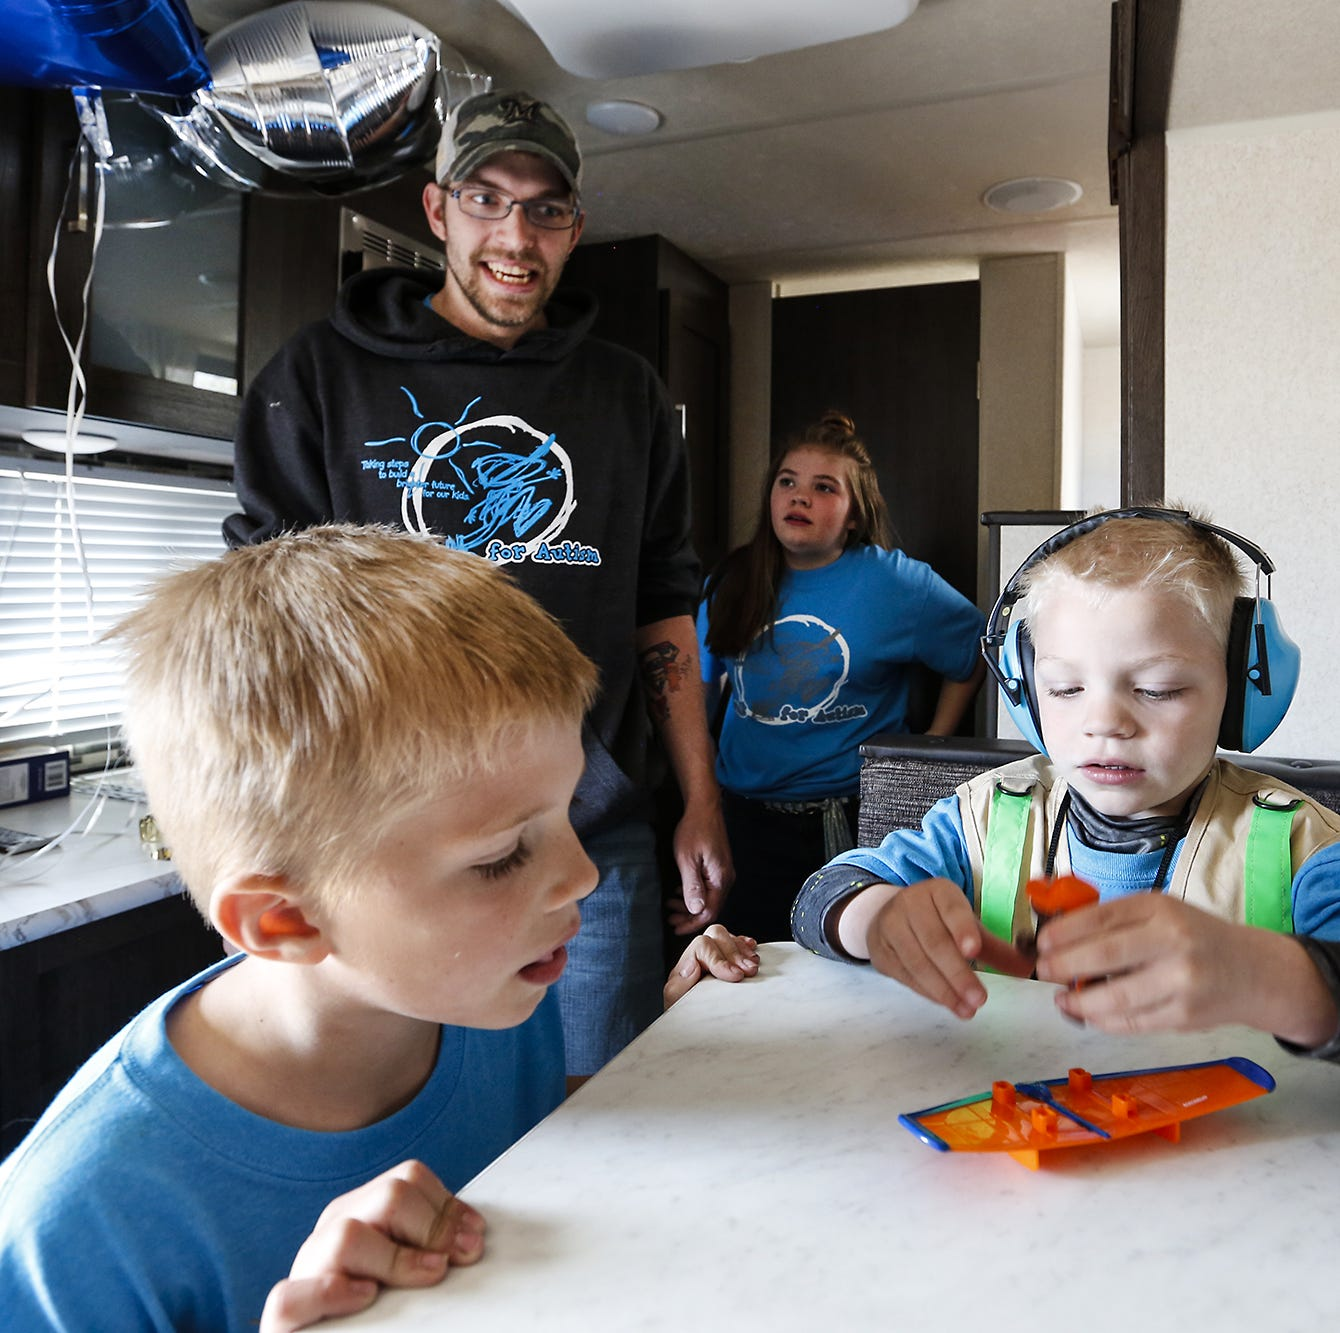 Hortonville child battling critical illnesses receives an RV through Make-A-Wish Foundation